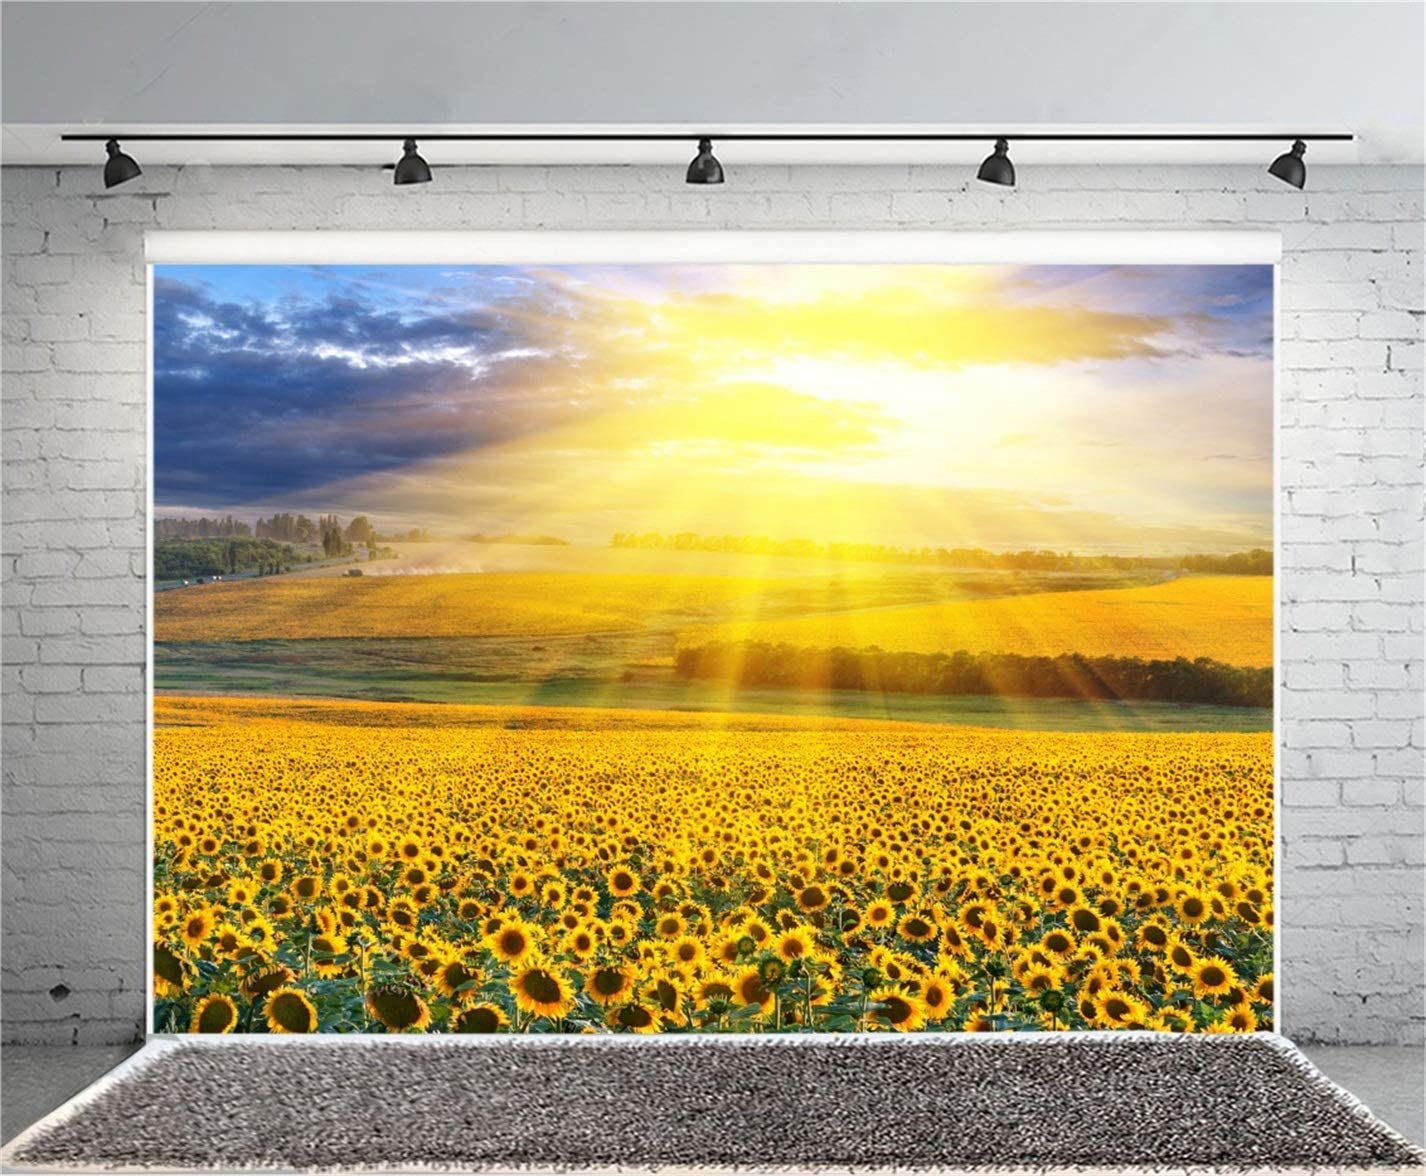 CSFOTO 10x8ft Sunflower Field Backdrop Sunshine Sunflowers Blossom Field Country Scenery Background for Photography Beautiful Village Rural Party Photo Wallpaper